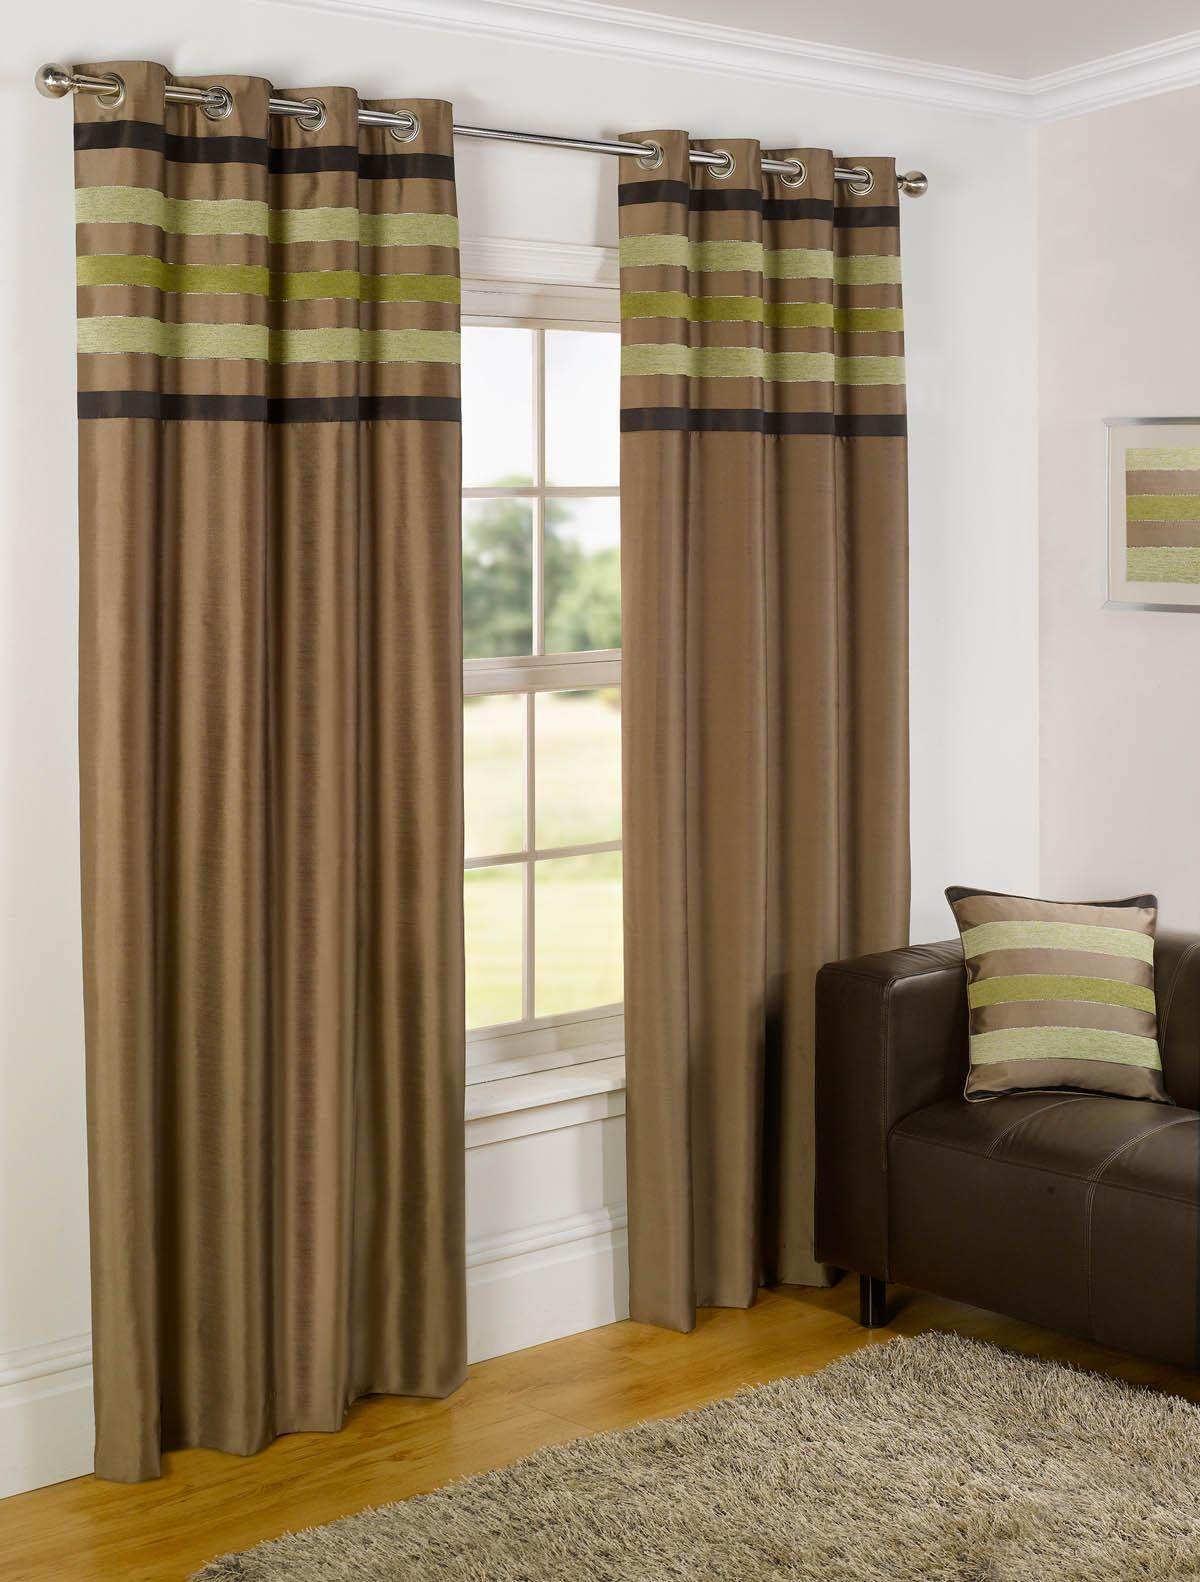 Cheap Curtains Online Green Eyelet Curtains Shop For Cheap Curtains And Blinds